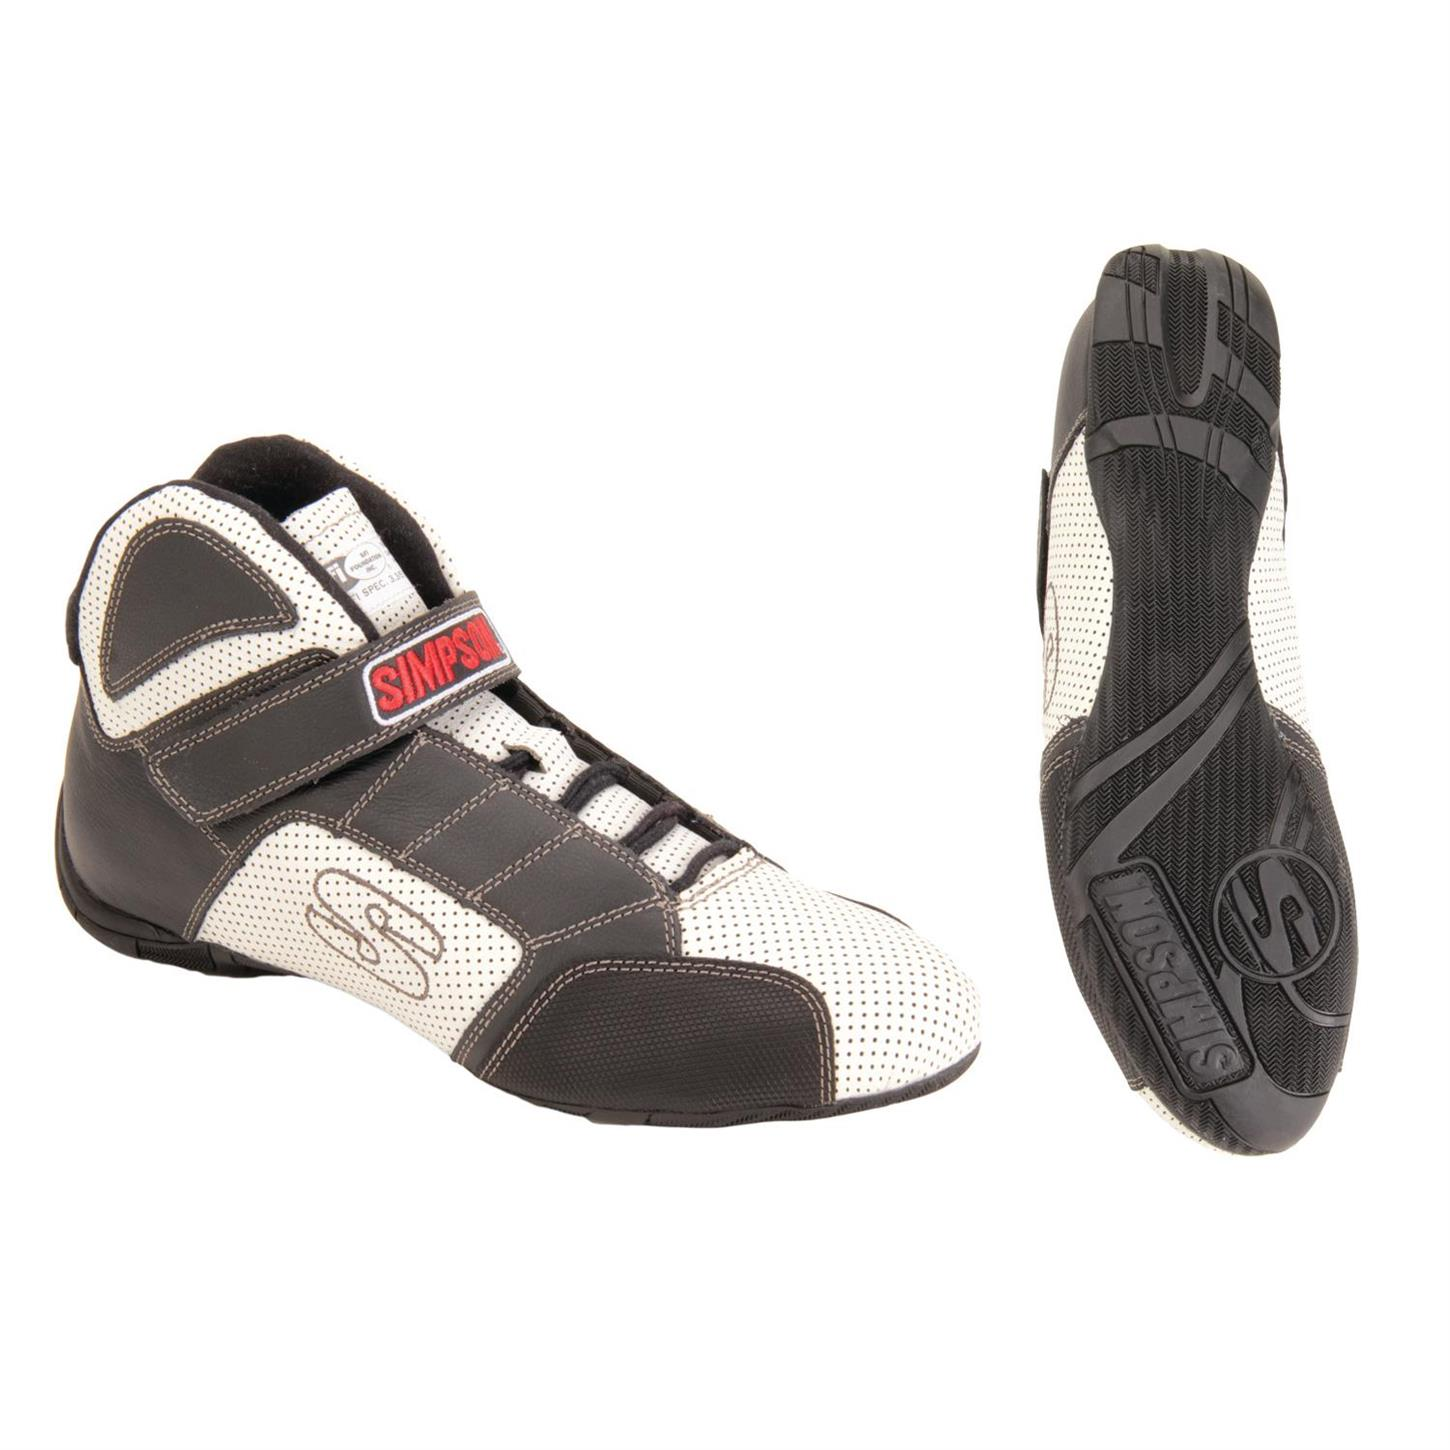 Simpson Racing Shoes Red Line SFI 3 3 5 Rated